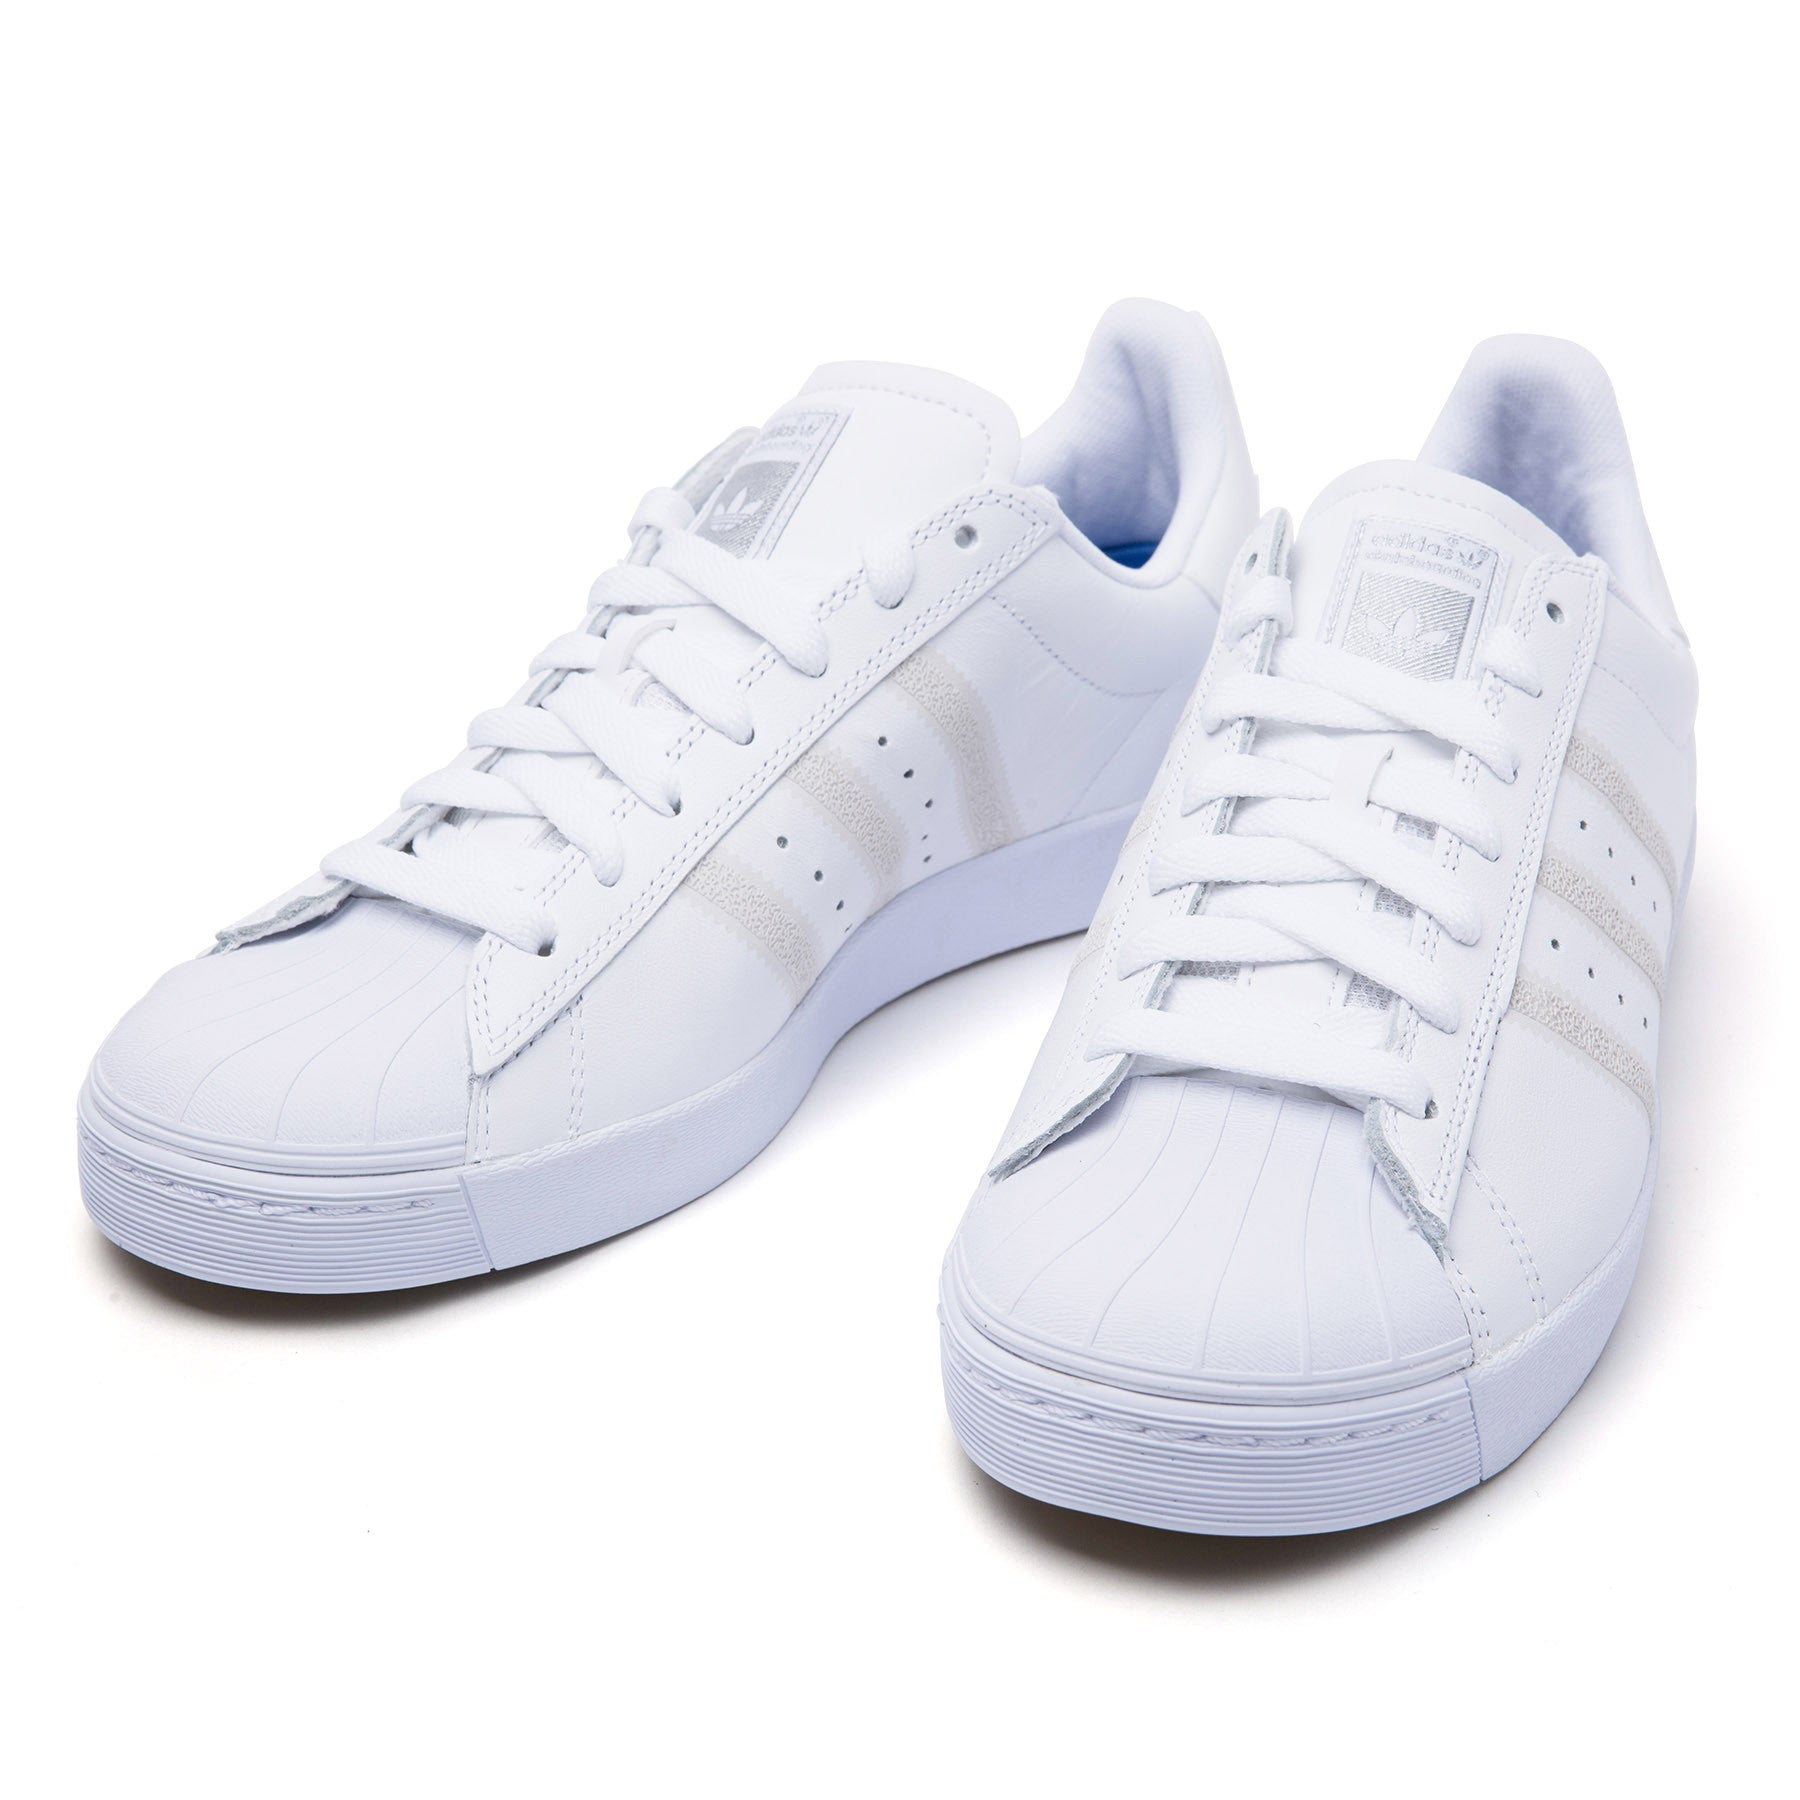 adidas Superstar Vulc Shoes Zumiez